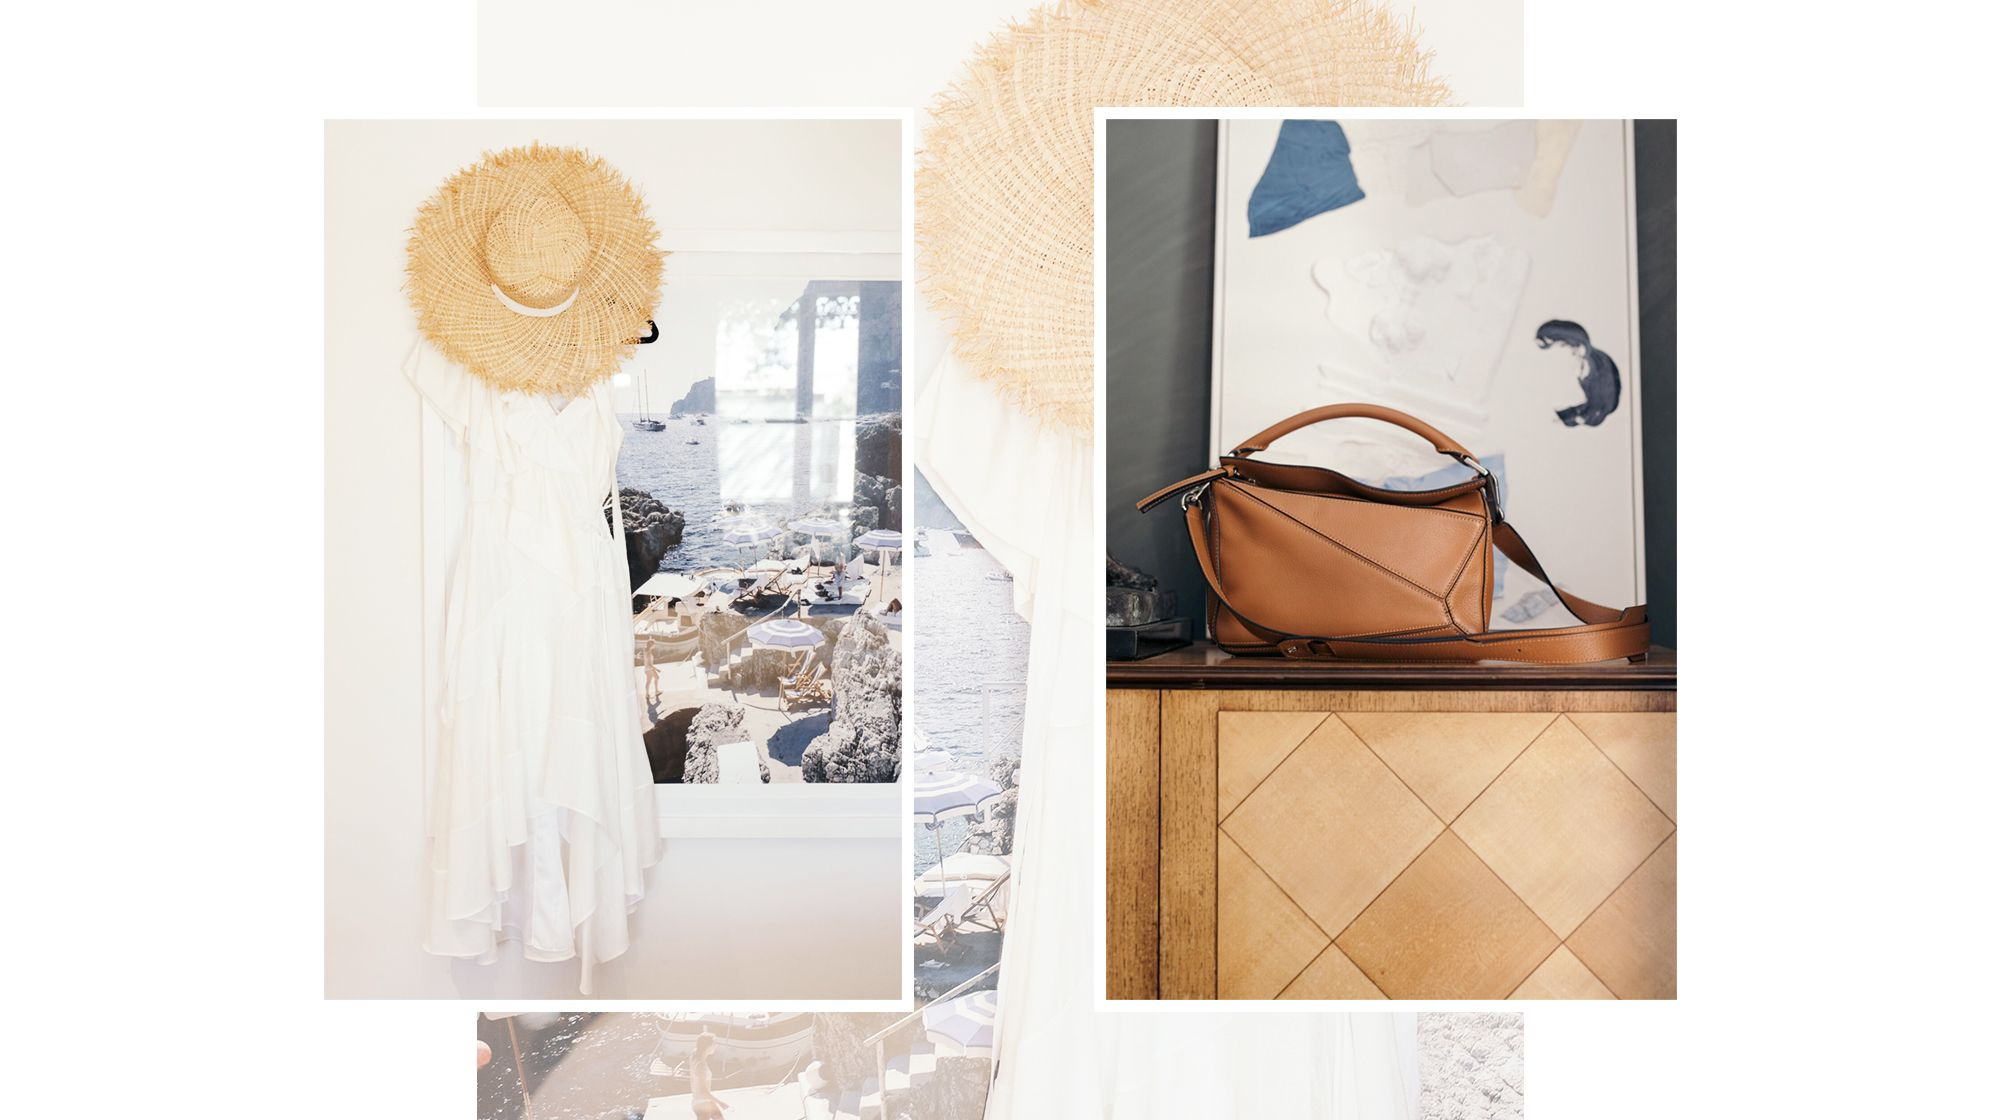 <h5><em>From left: Albus Lumen x Nerida Winter hat, Loewe dress, Loewe bag</em></h5>